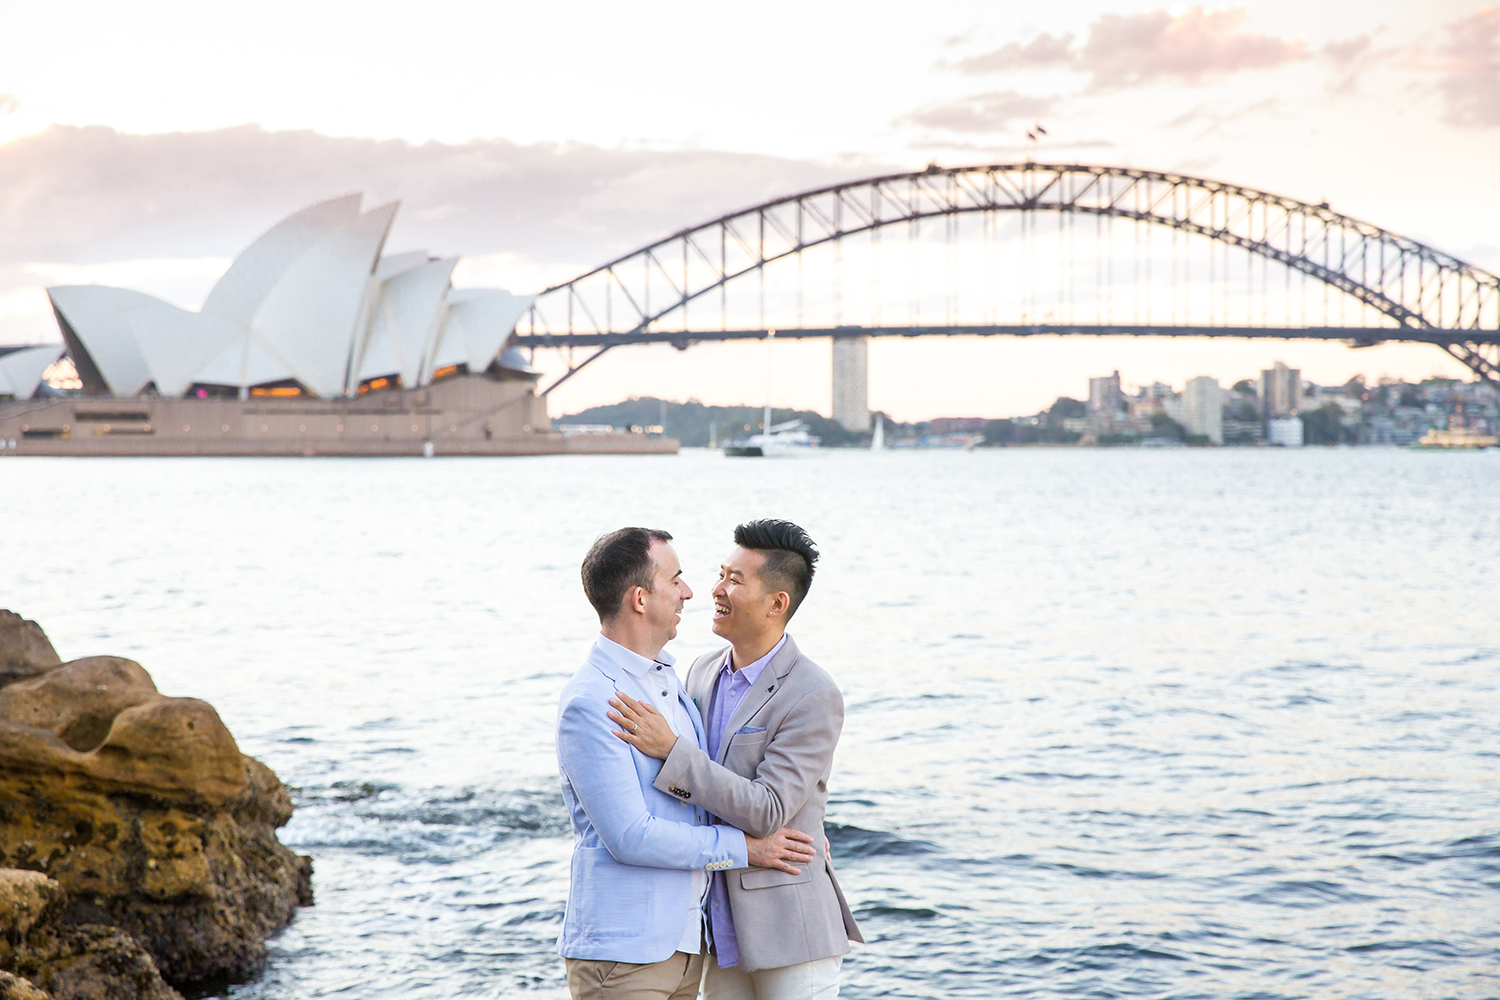 Sydney Gay Wedding Photographer - Jennifer Lam Photography (63).jpg